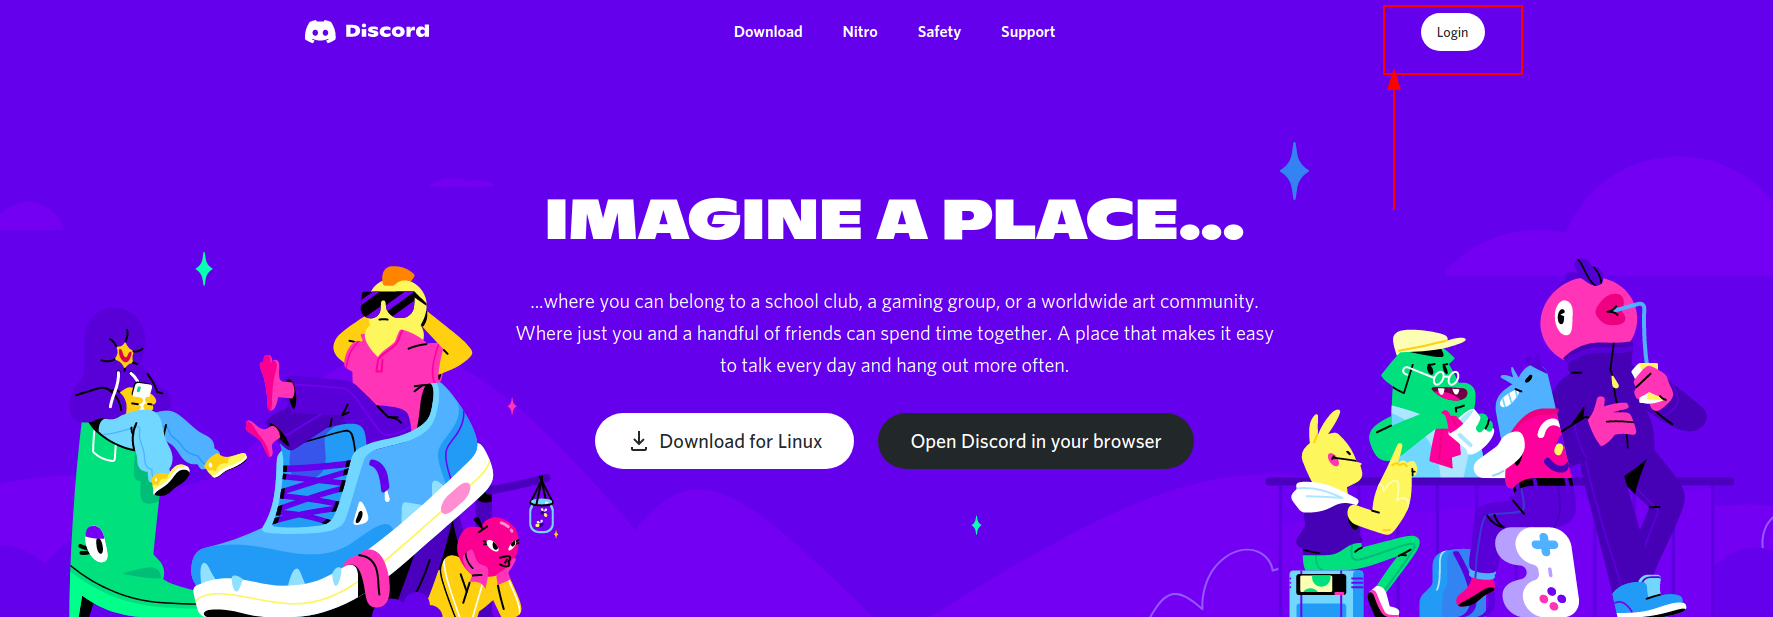 Register your fake Discord ID